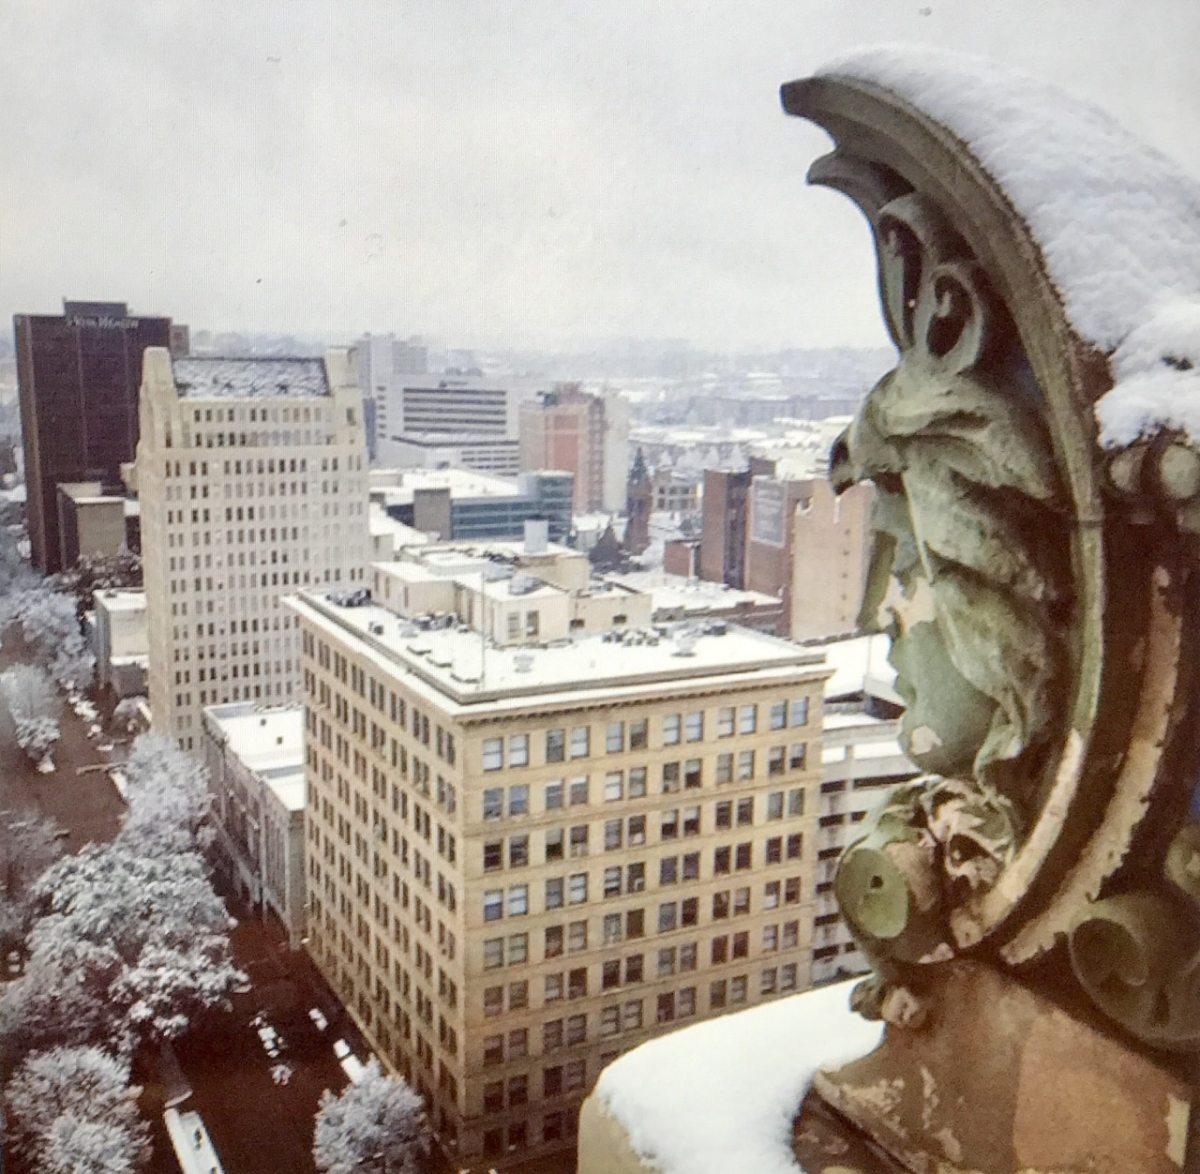 Instagram spotlight on Birmingham architecture in the snow